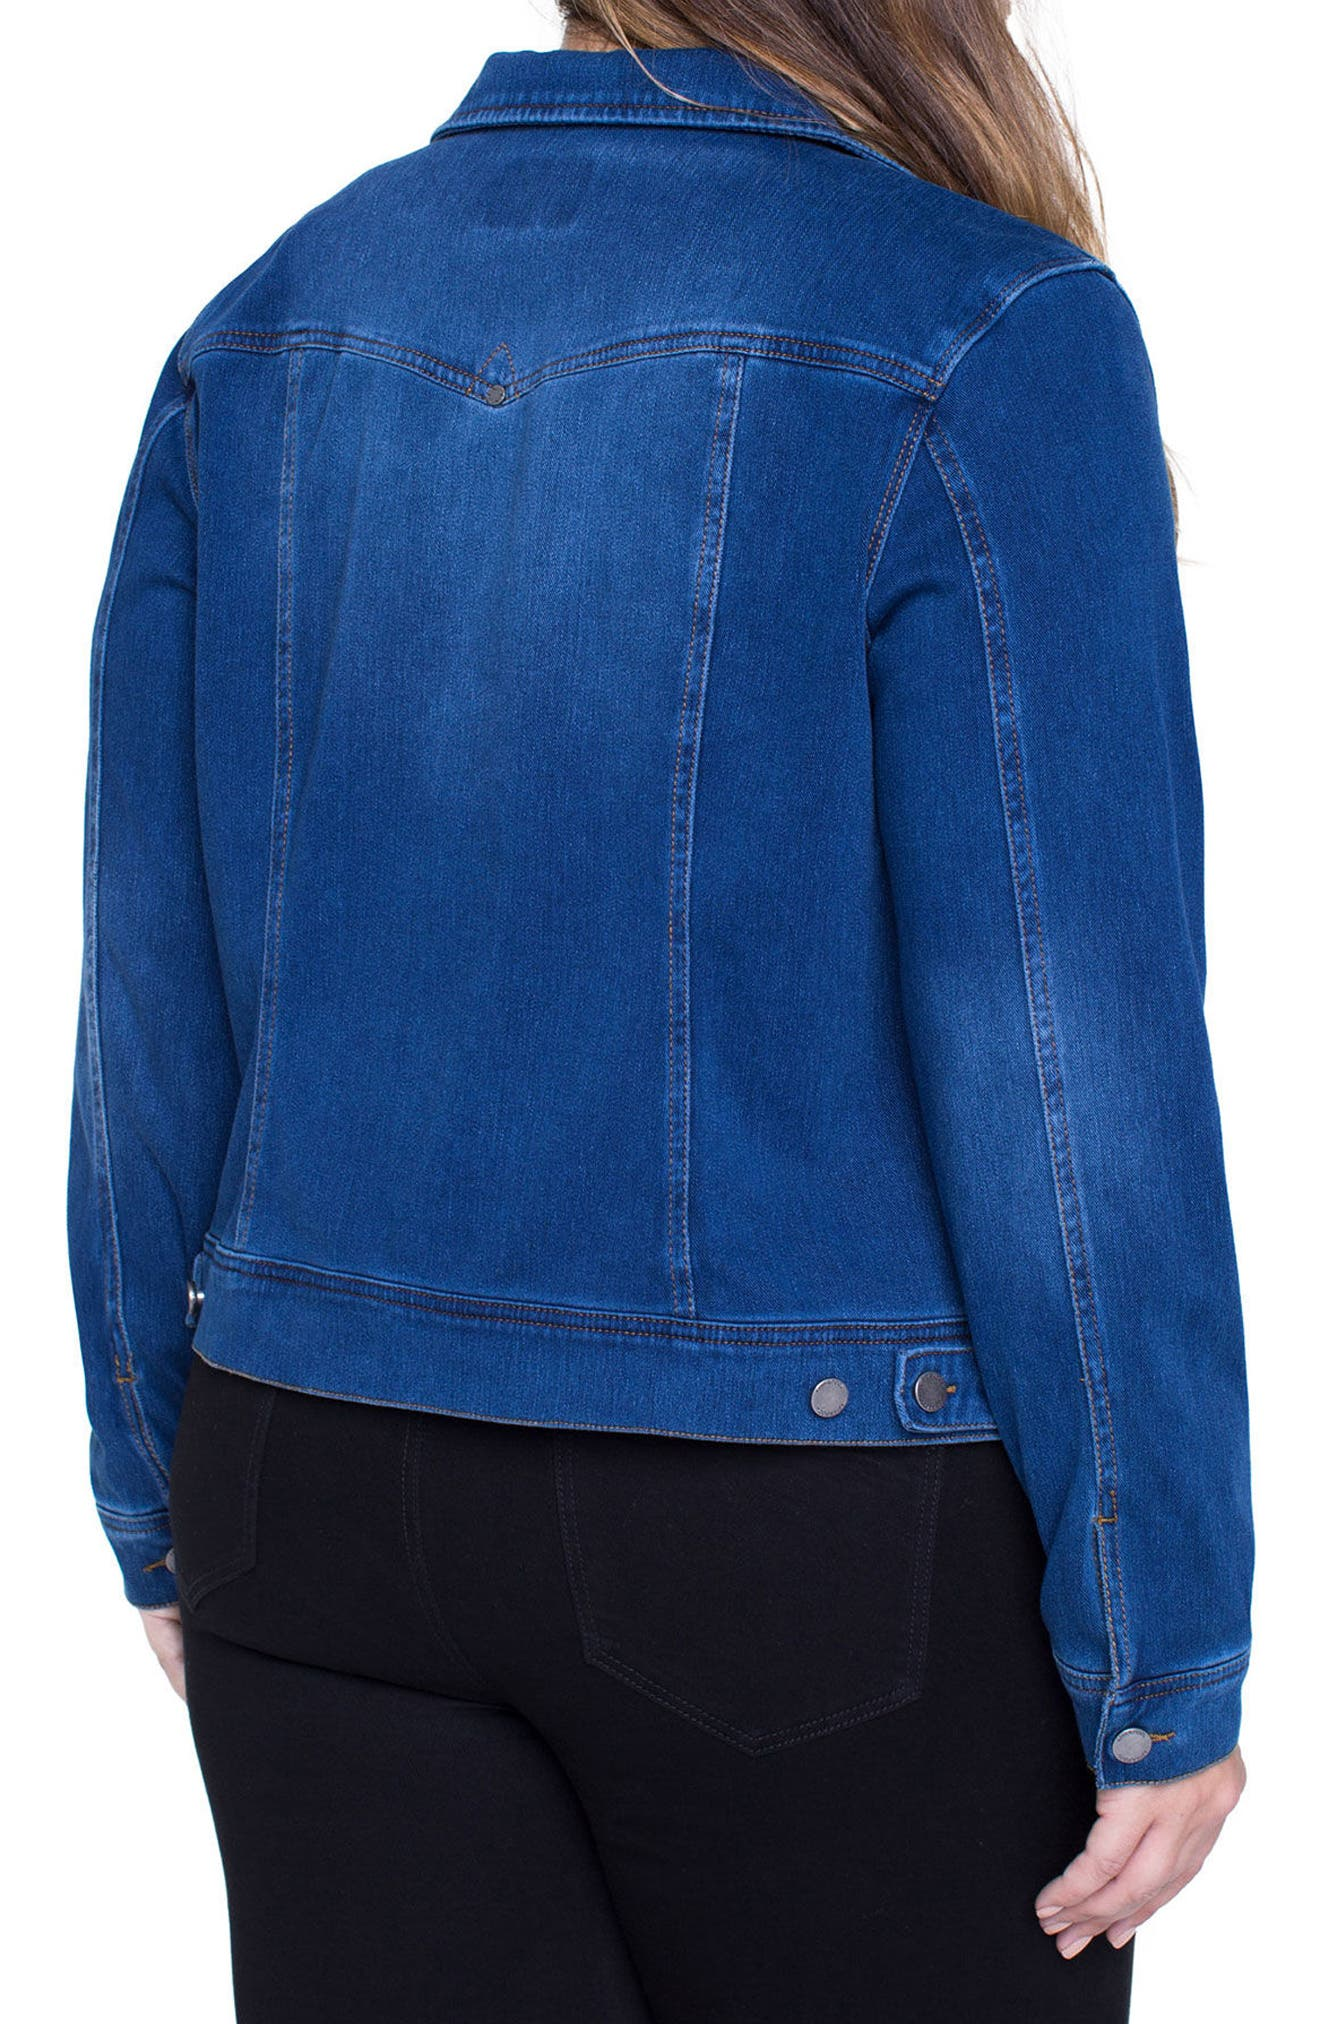 Alternate Image 2  - Liverpool Jeans Company Denim Knit Jacket (Plus Size)